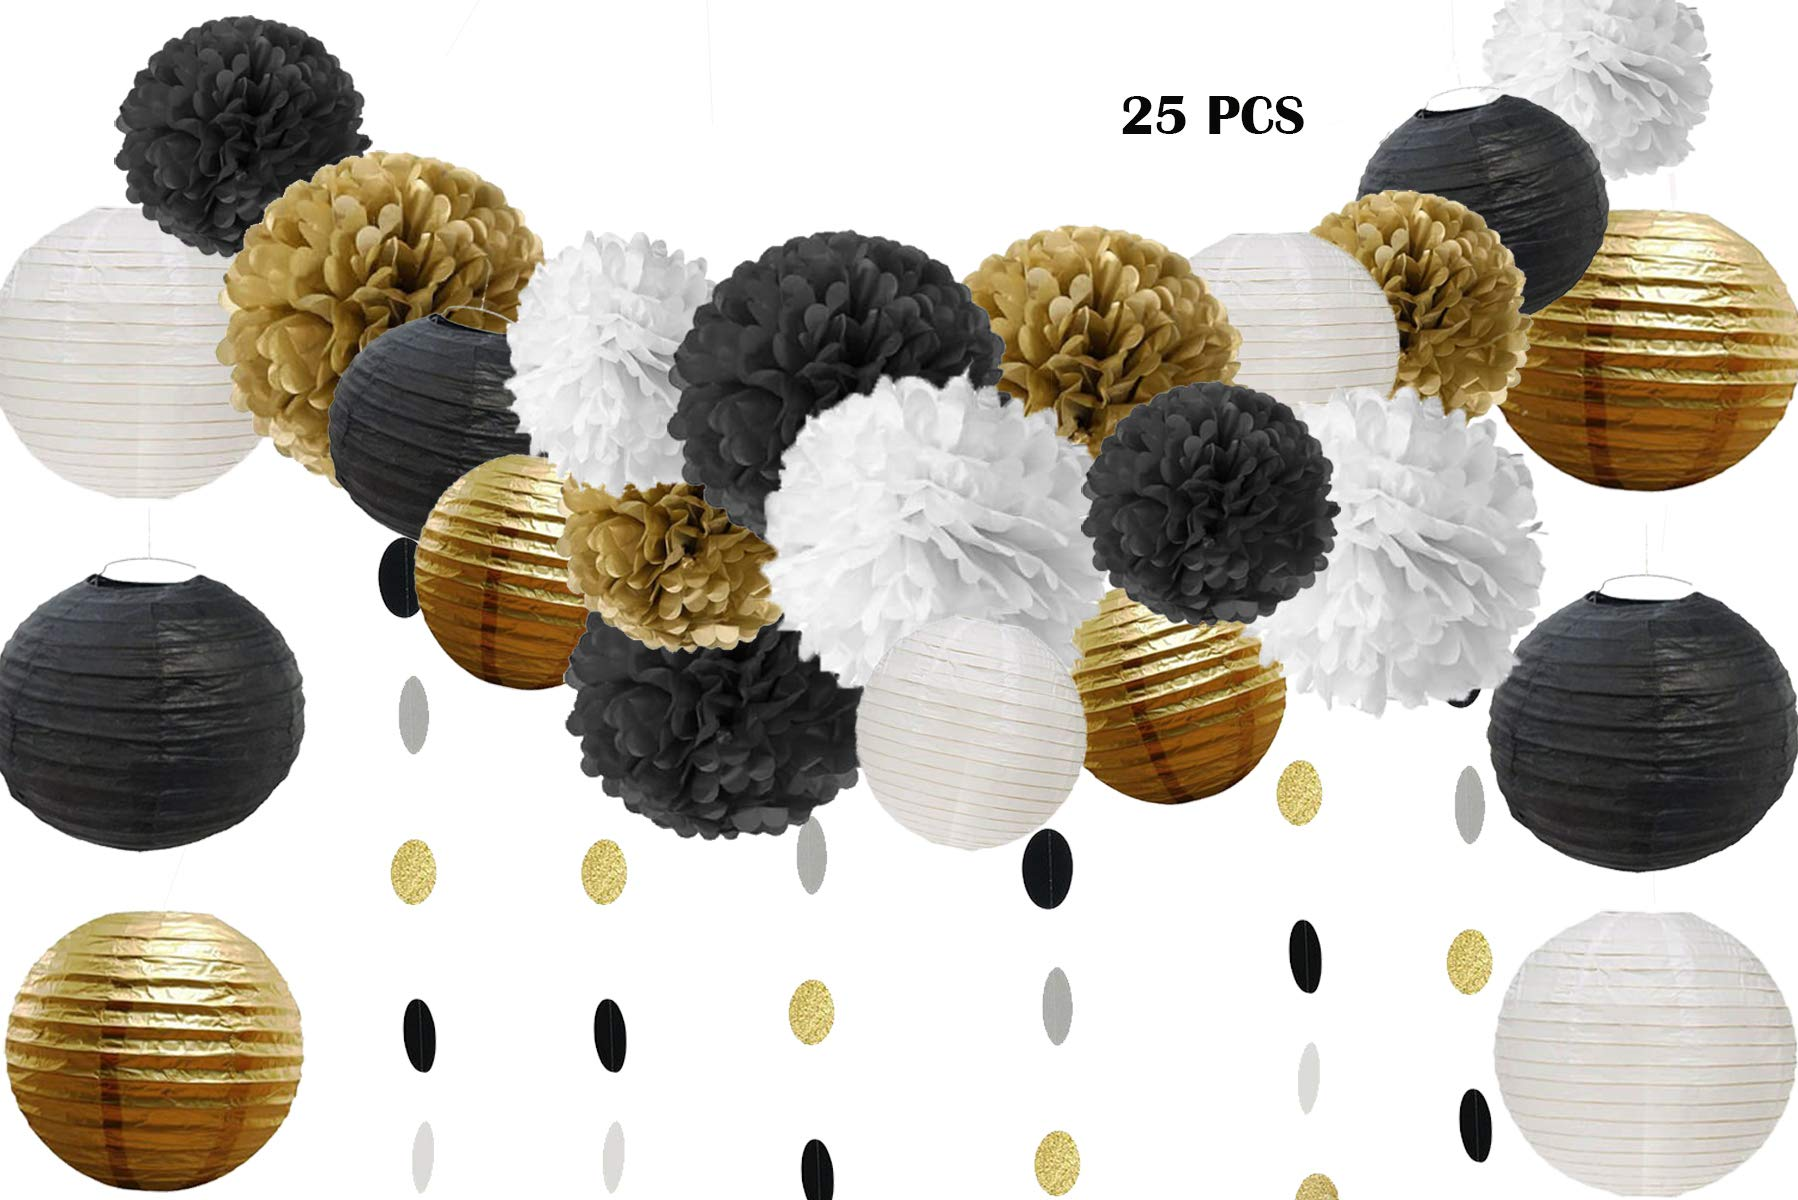 25 Pcs Black Gold White Tissue Pom Poms Paper Flowers Paper Lanterns for 40s 50s 60s 70s Birthday Party Decorations by HOMEJOY